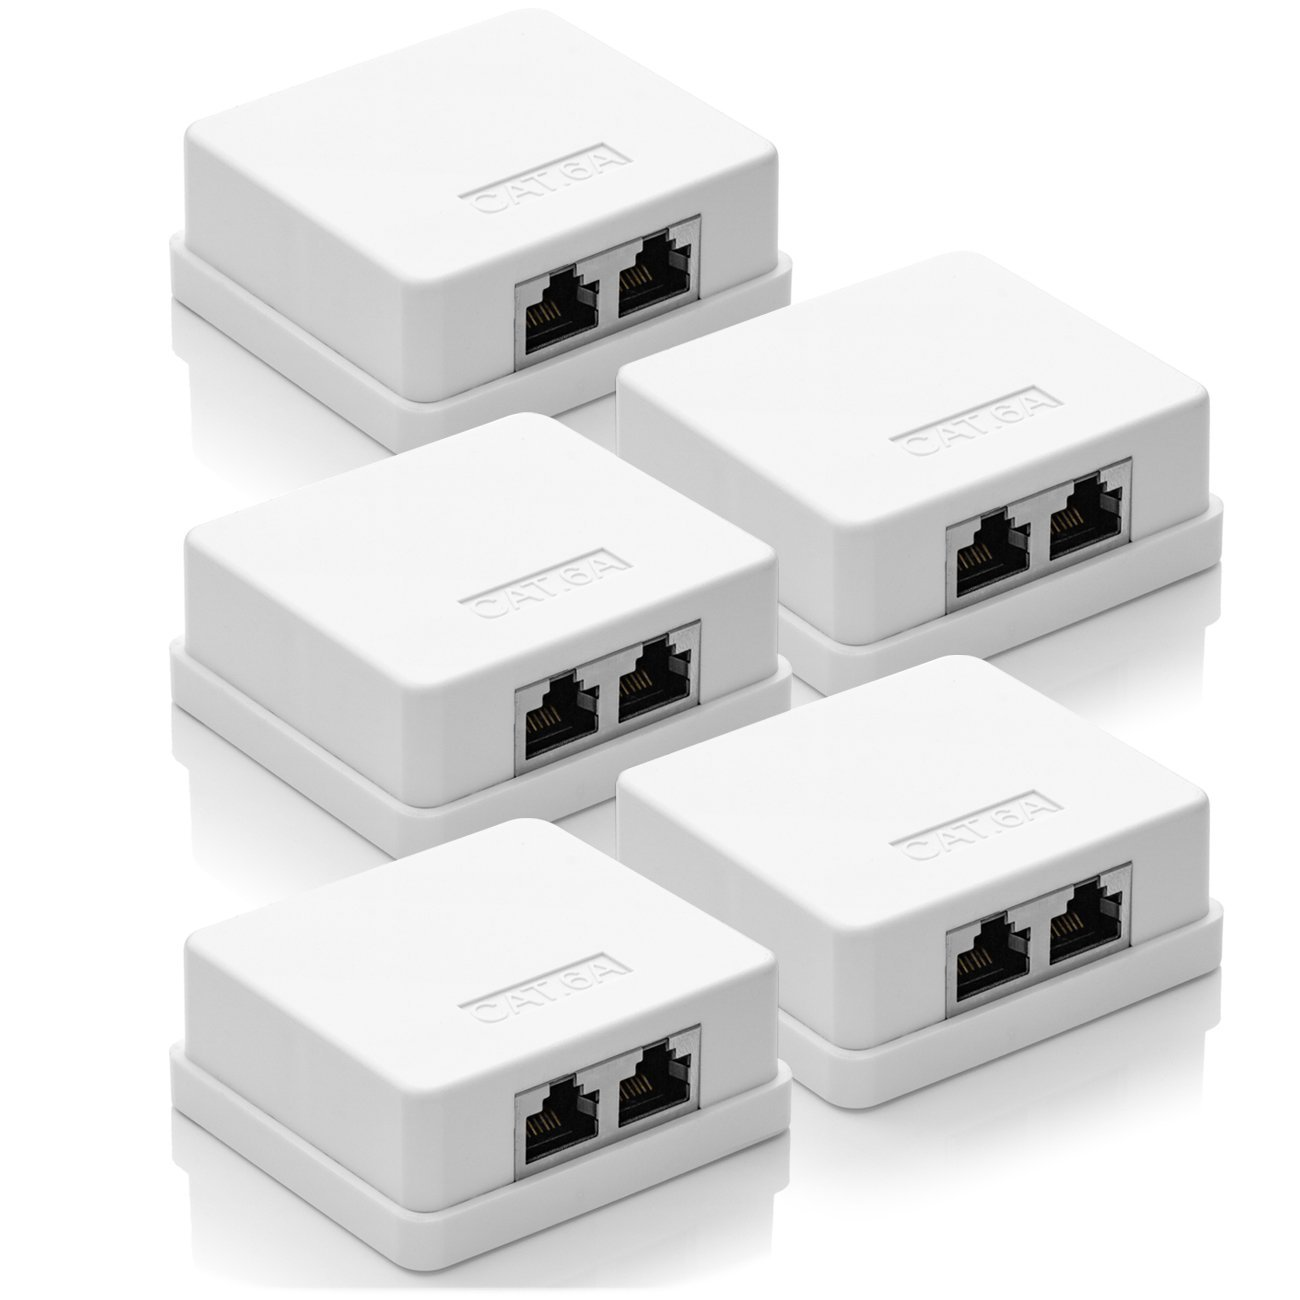 White deleyCON 2x CAT 6a Network Socket 2x RJ45 Socket FTP Shielded Surface-Mounted 10Gbit Ethernet LAN Patch Cable